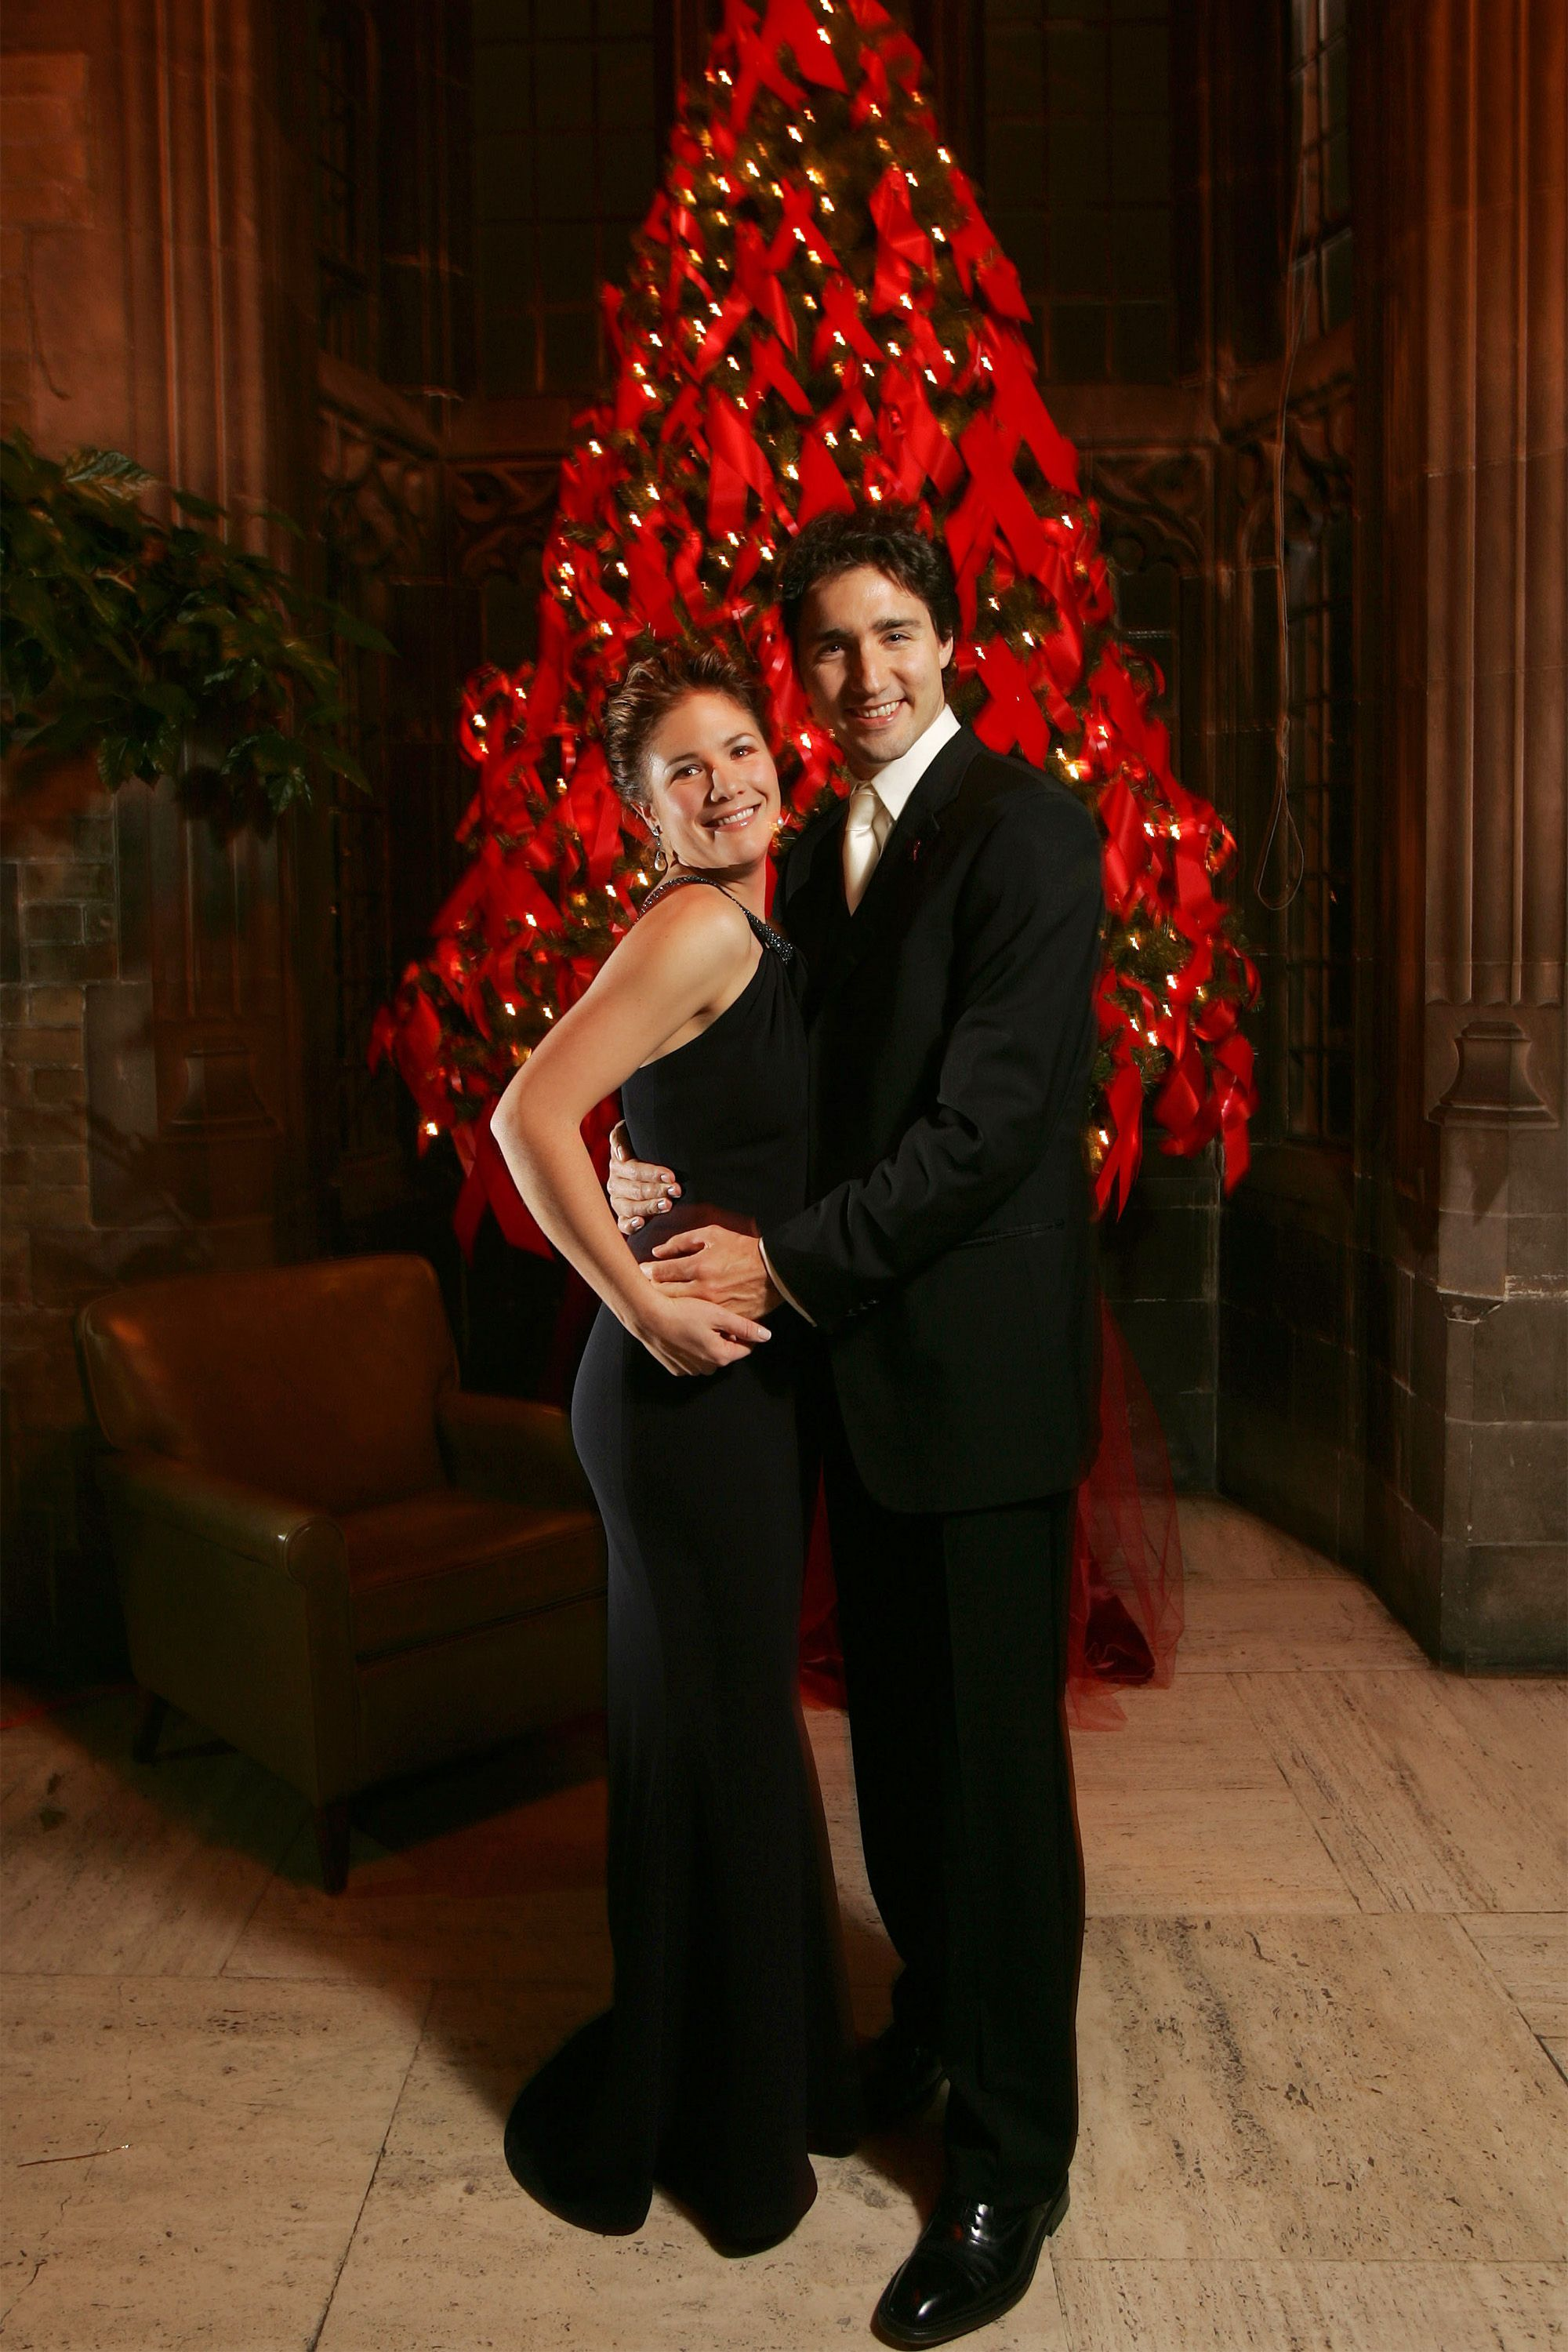 BLOOR ENTERTAINS WRAP---11/30/05--Sophie and Justin Trudeau at the wrap after the Bloor Street entertains fundraiser at Hart House on the University of Toronto , November 30, 2005. (Photo by Steve Russell/Toronto Star via Getty Images)